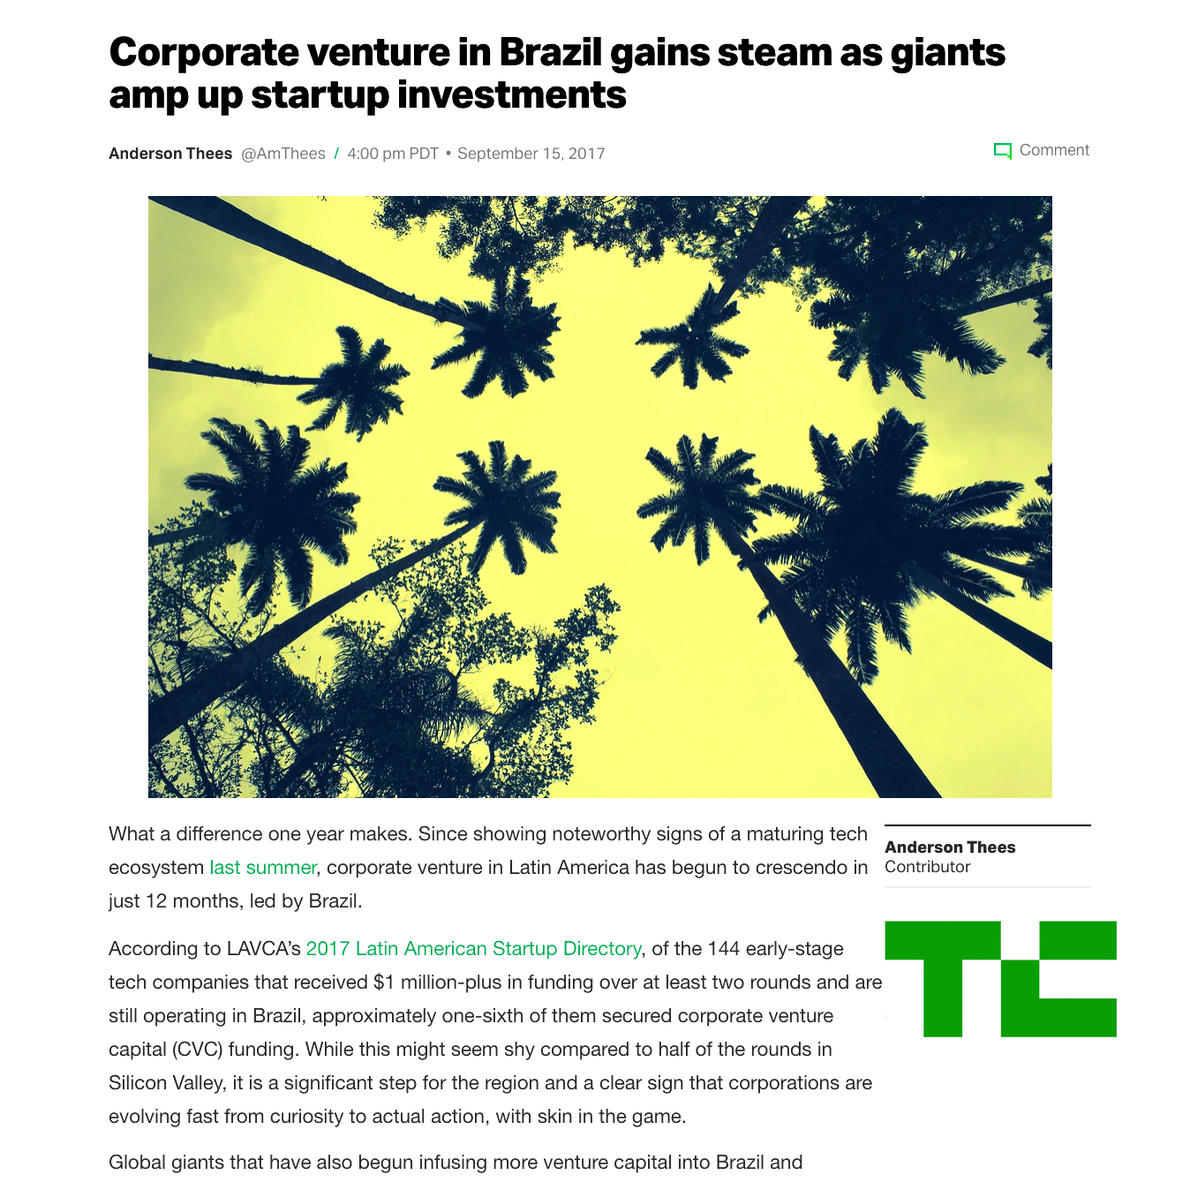 Corporate VCs Amp Up Investments.